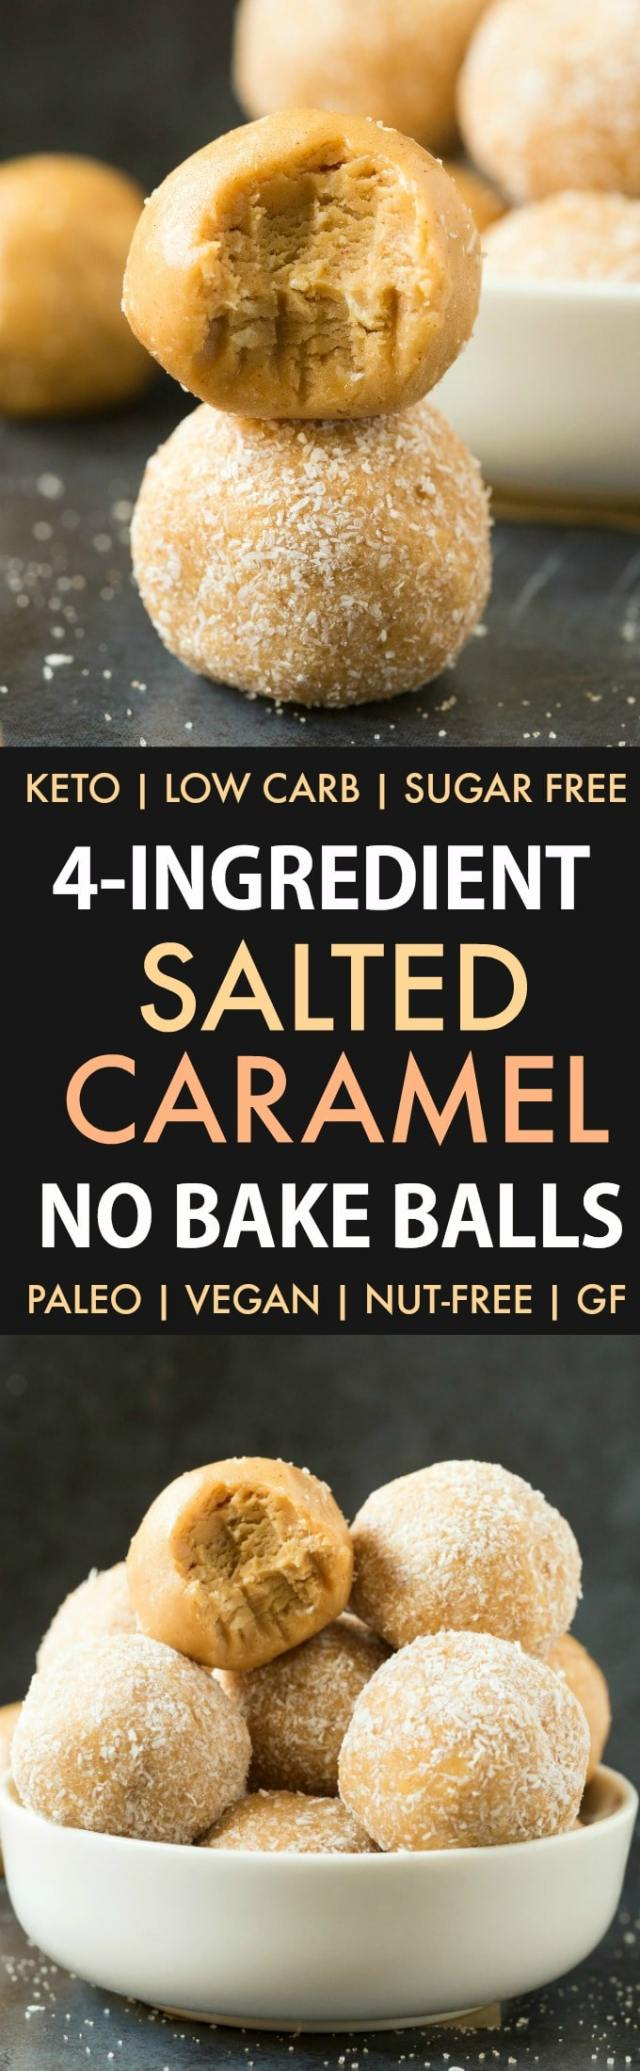 Healthy No Bake Salted Caramel Protein Bliss Balls in a collage.